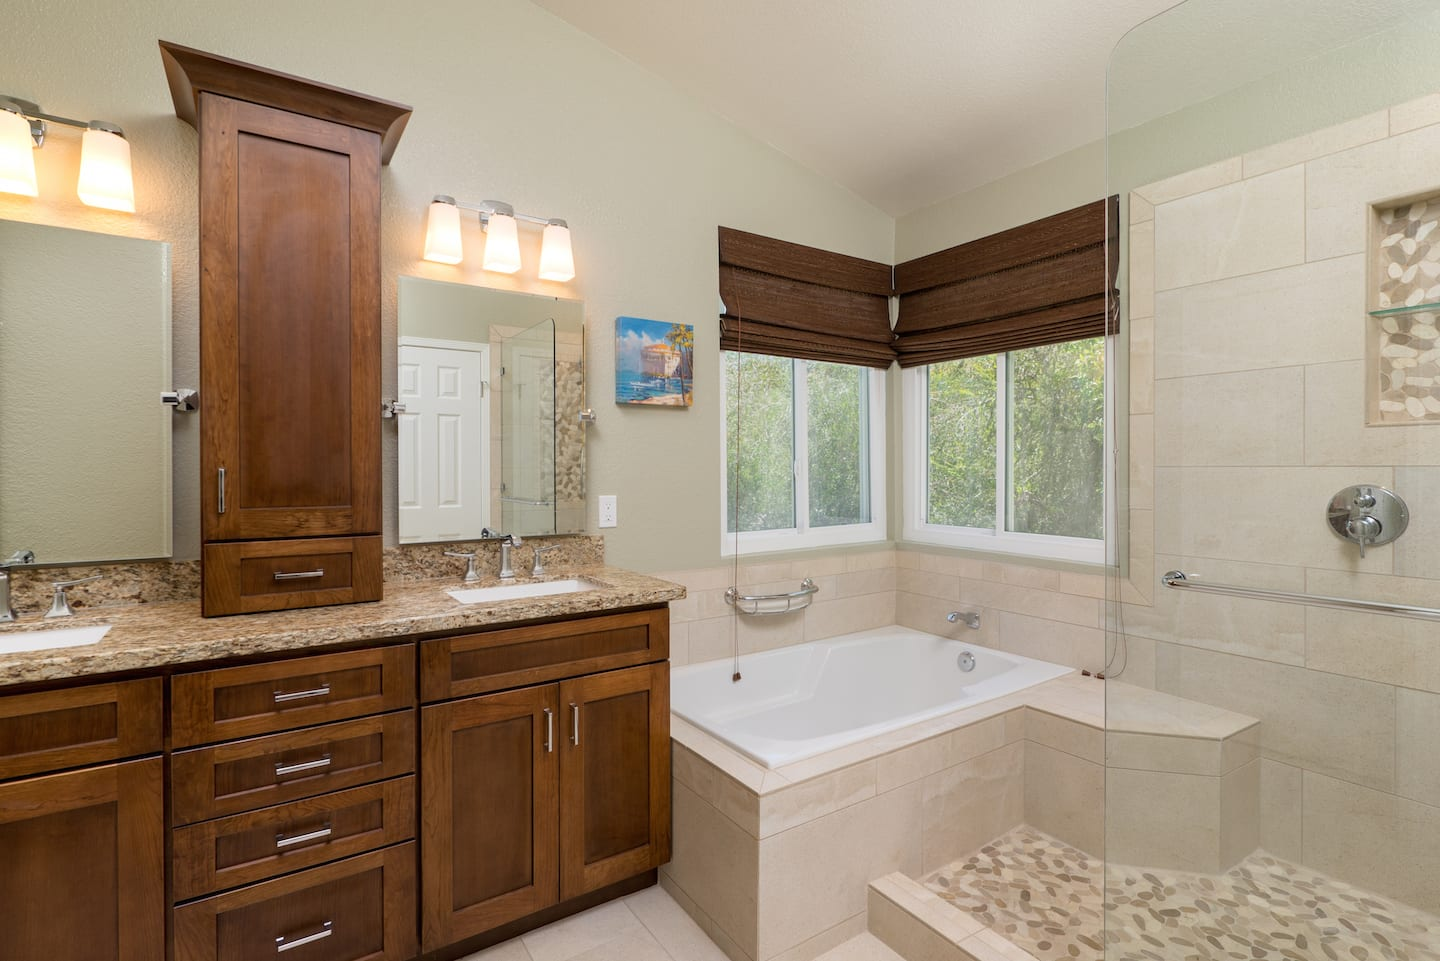 Remodeling Bathroom Bathroom Remodeling  Planning And Hiring  Angie's List